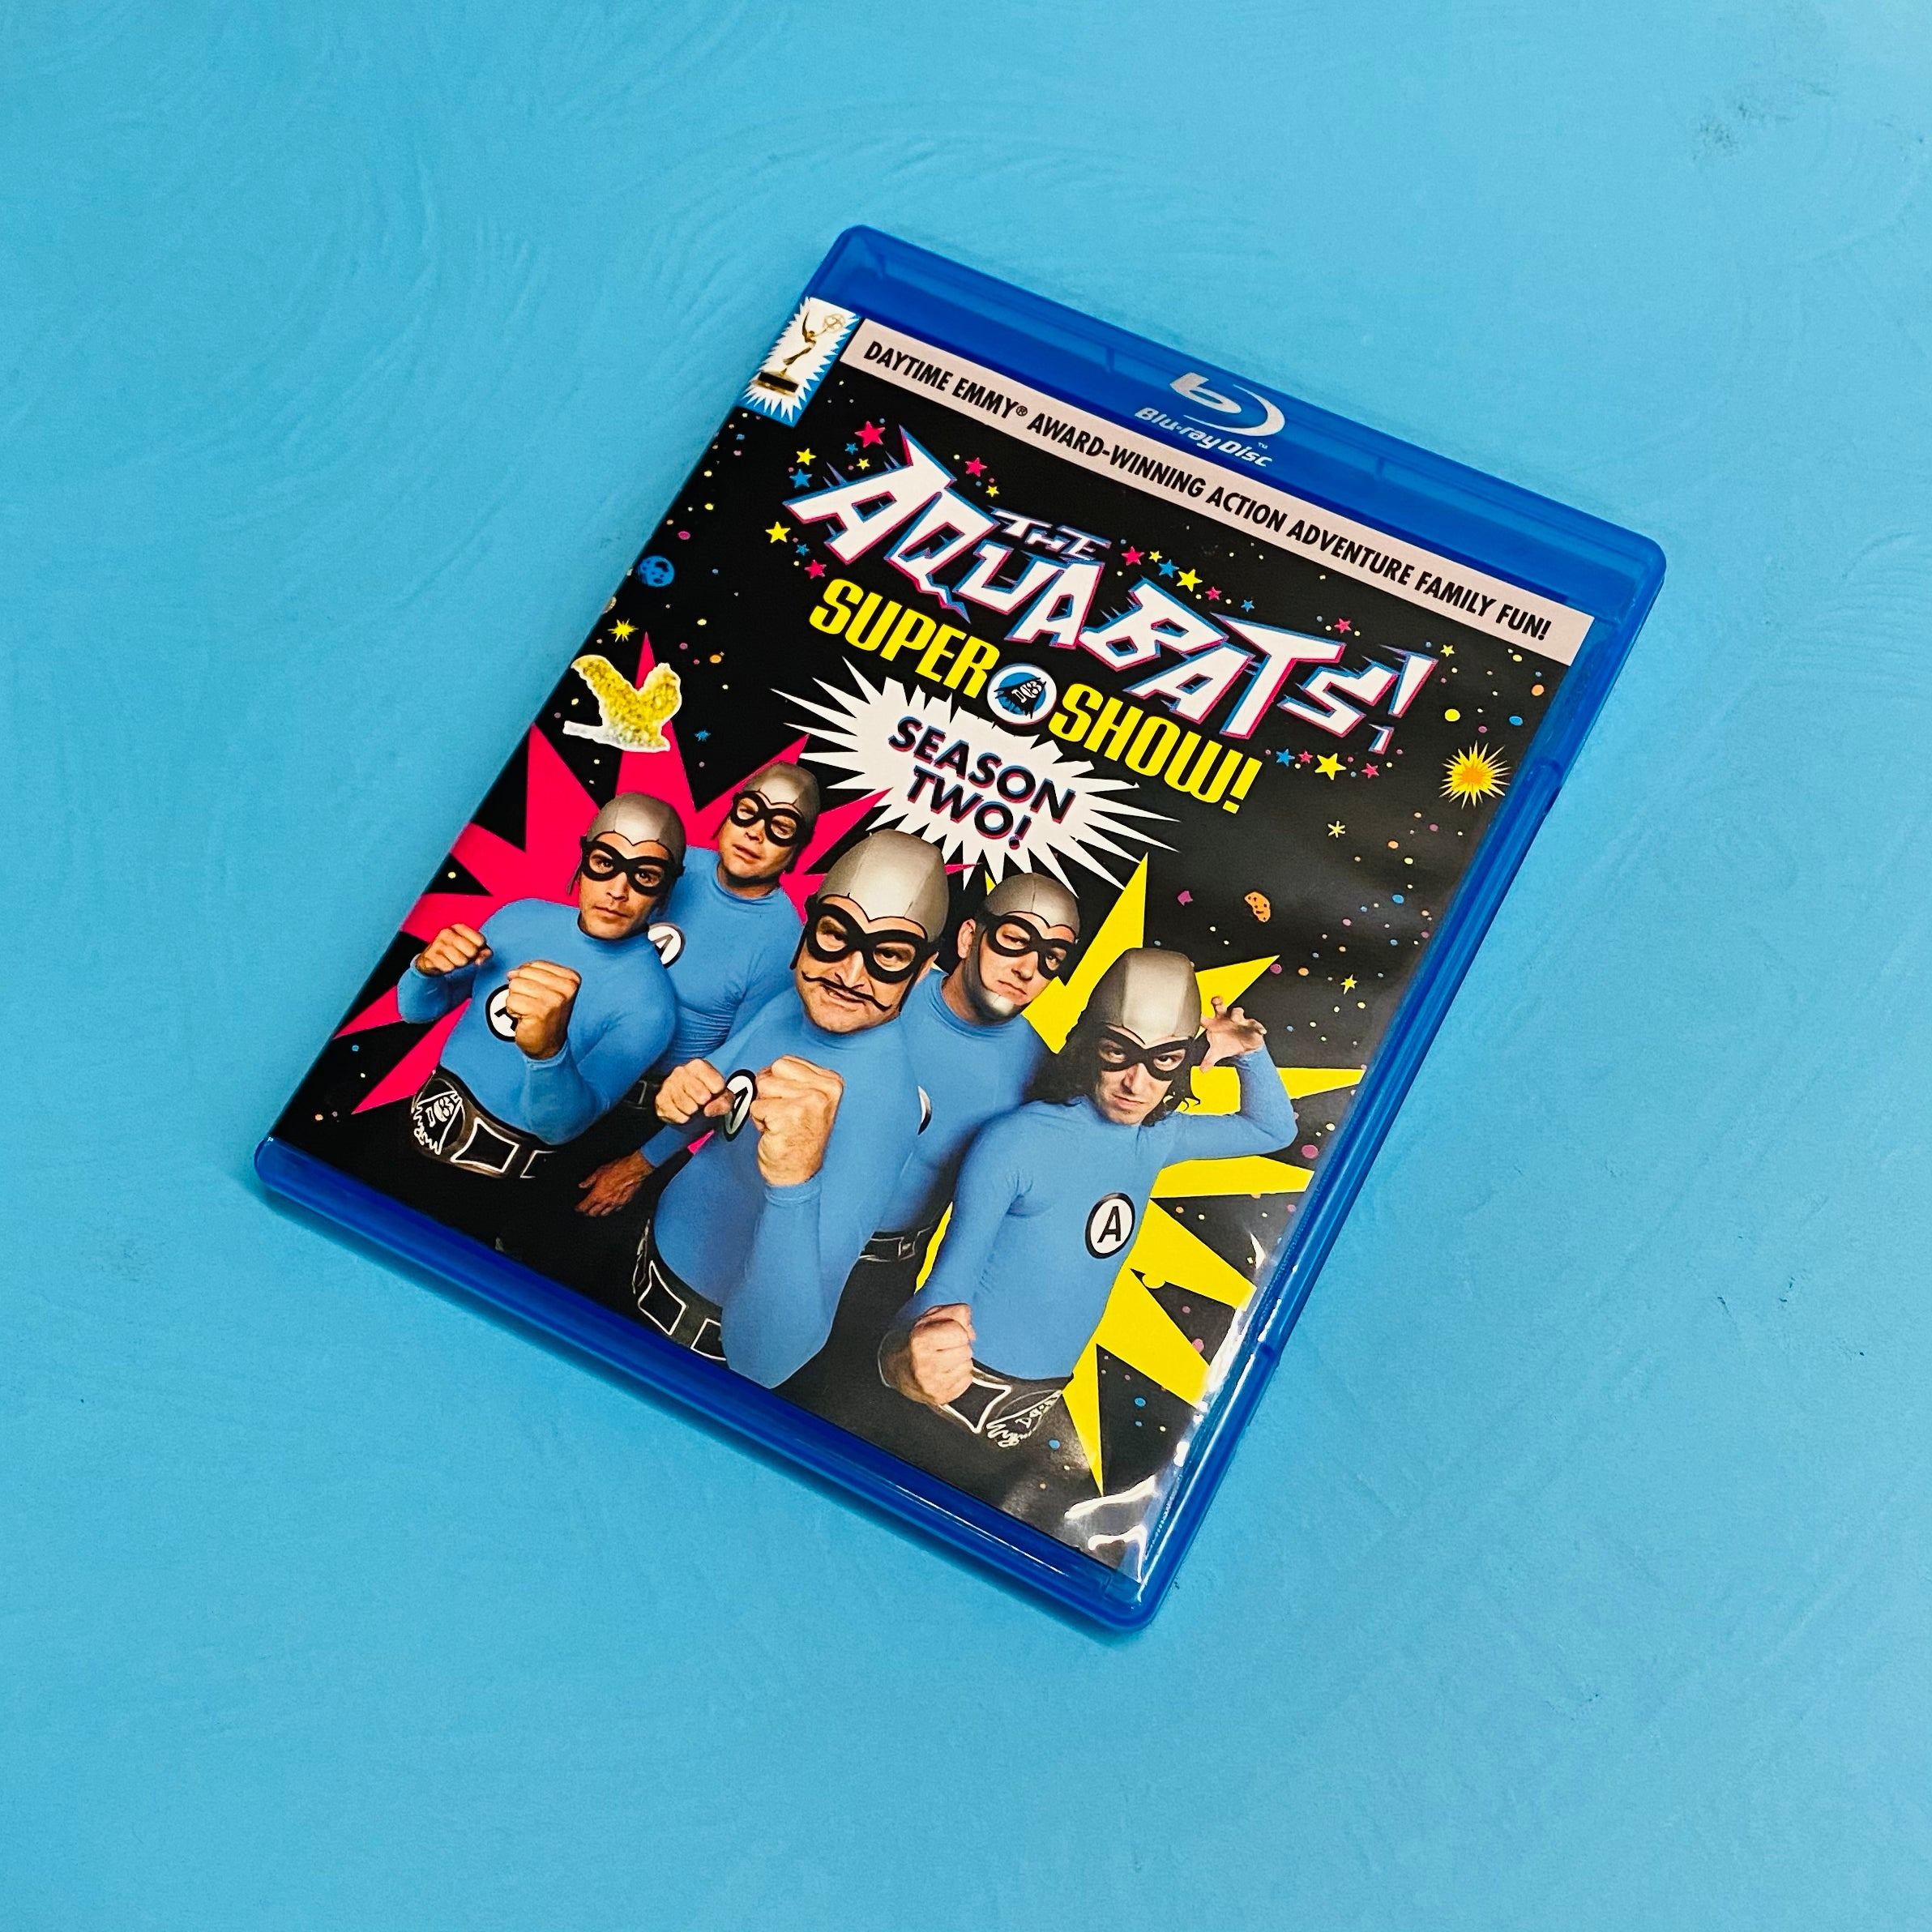 The Aquabats! Super Show! Season Two! Blu-ray!